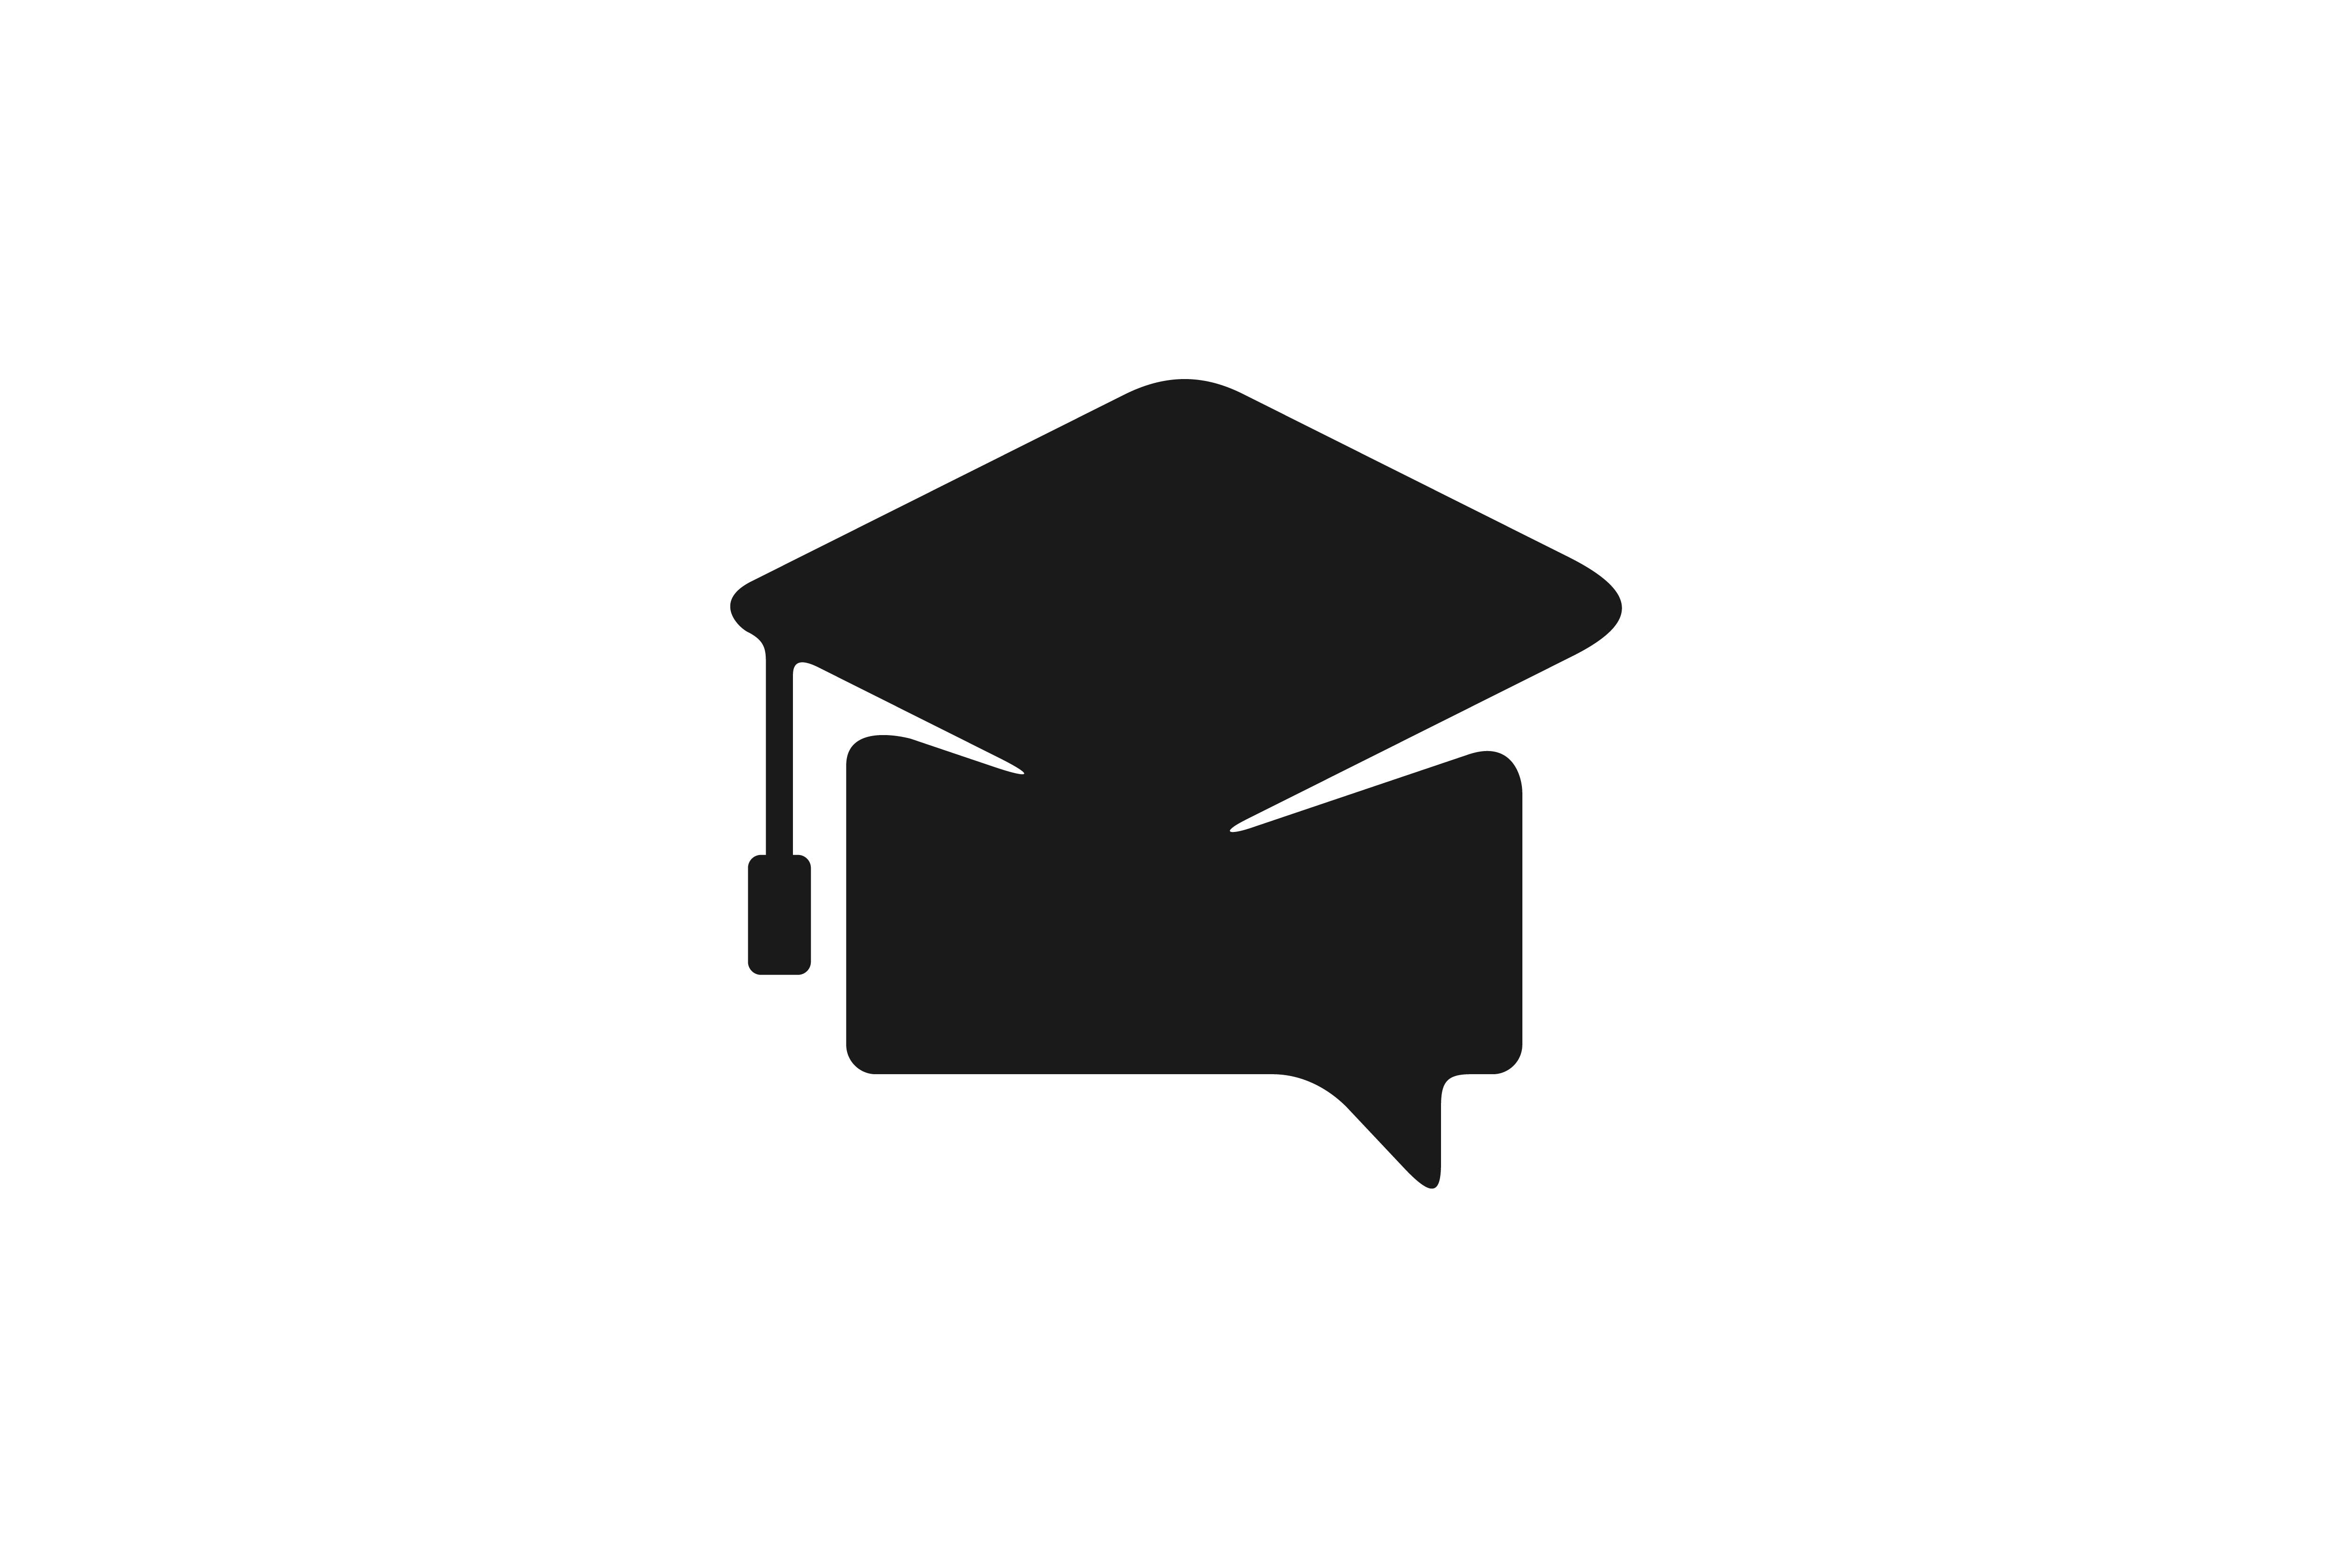 Download Free Chat Graduation Cap Logo Graphic By Yahyaanasatokillah for Cricut Explore, Silhouette and other cutting machines.